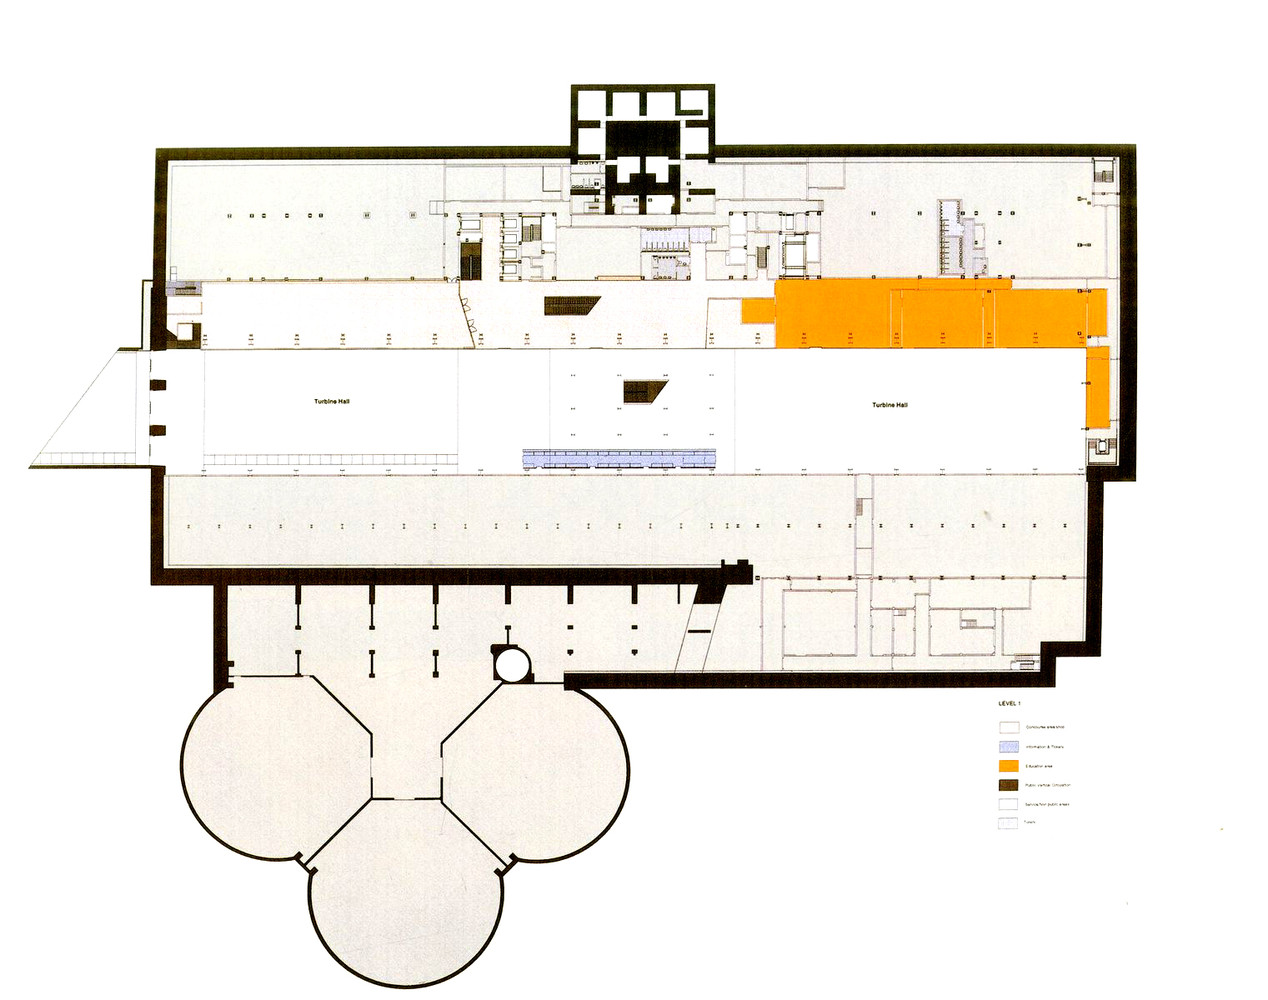 15 Historical Buildings With Modern Interiors - Sheet4